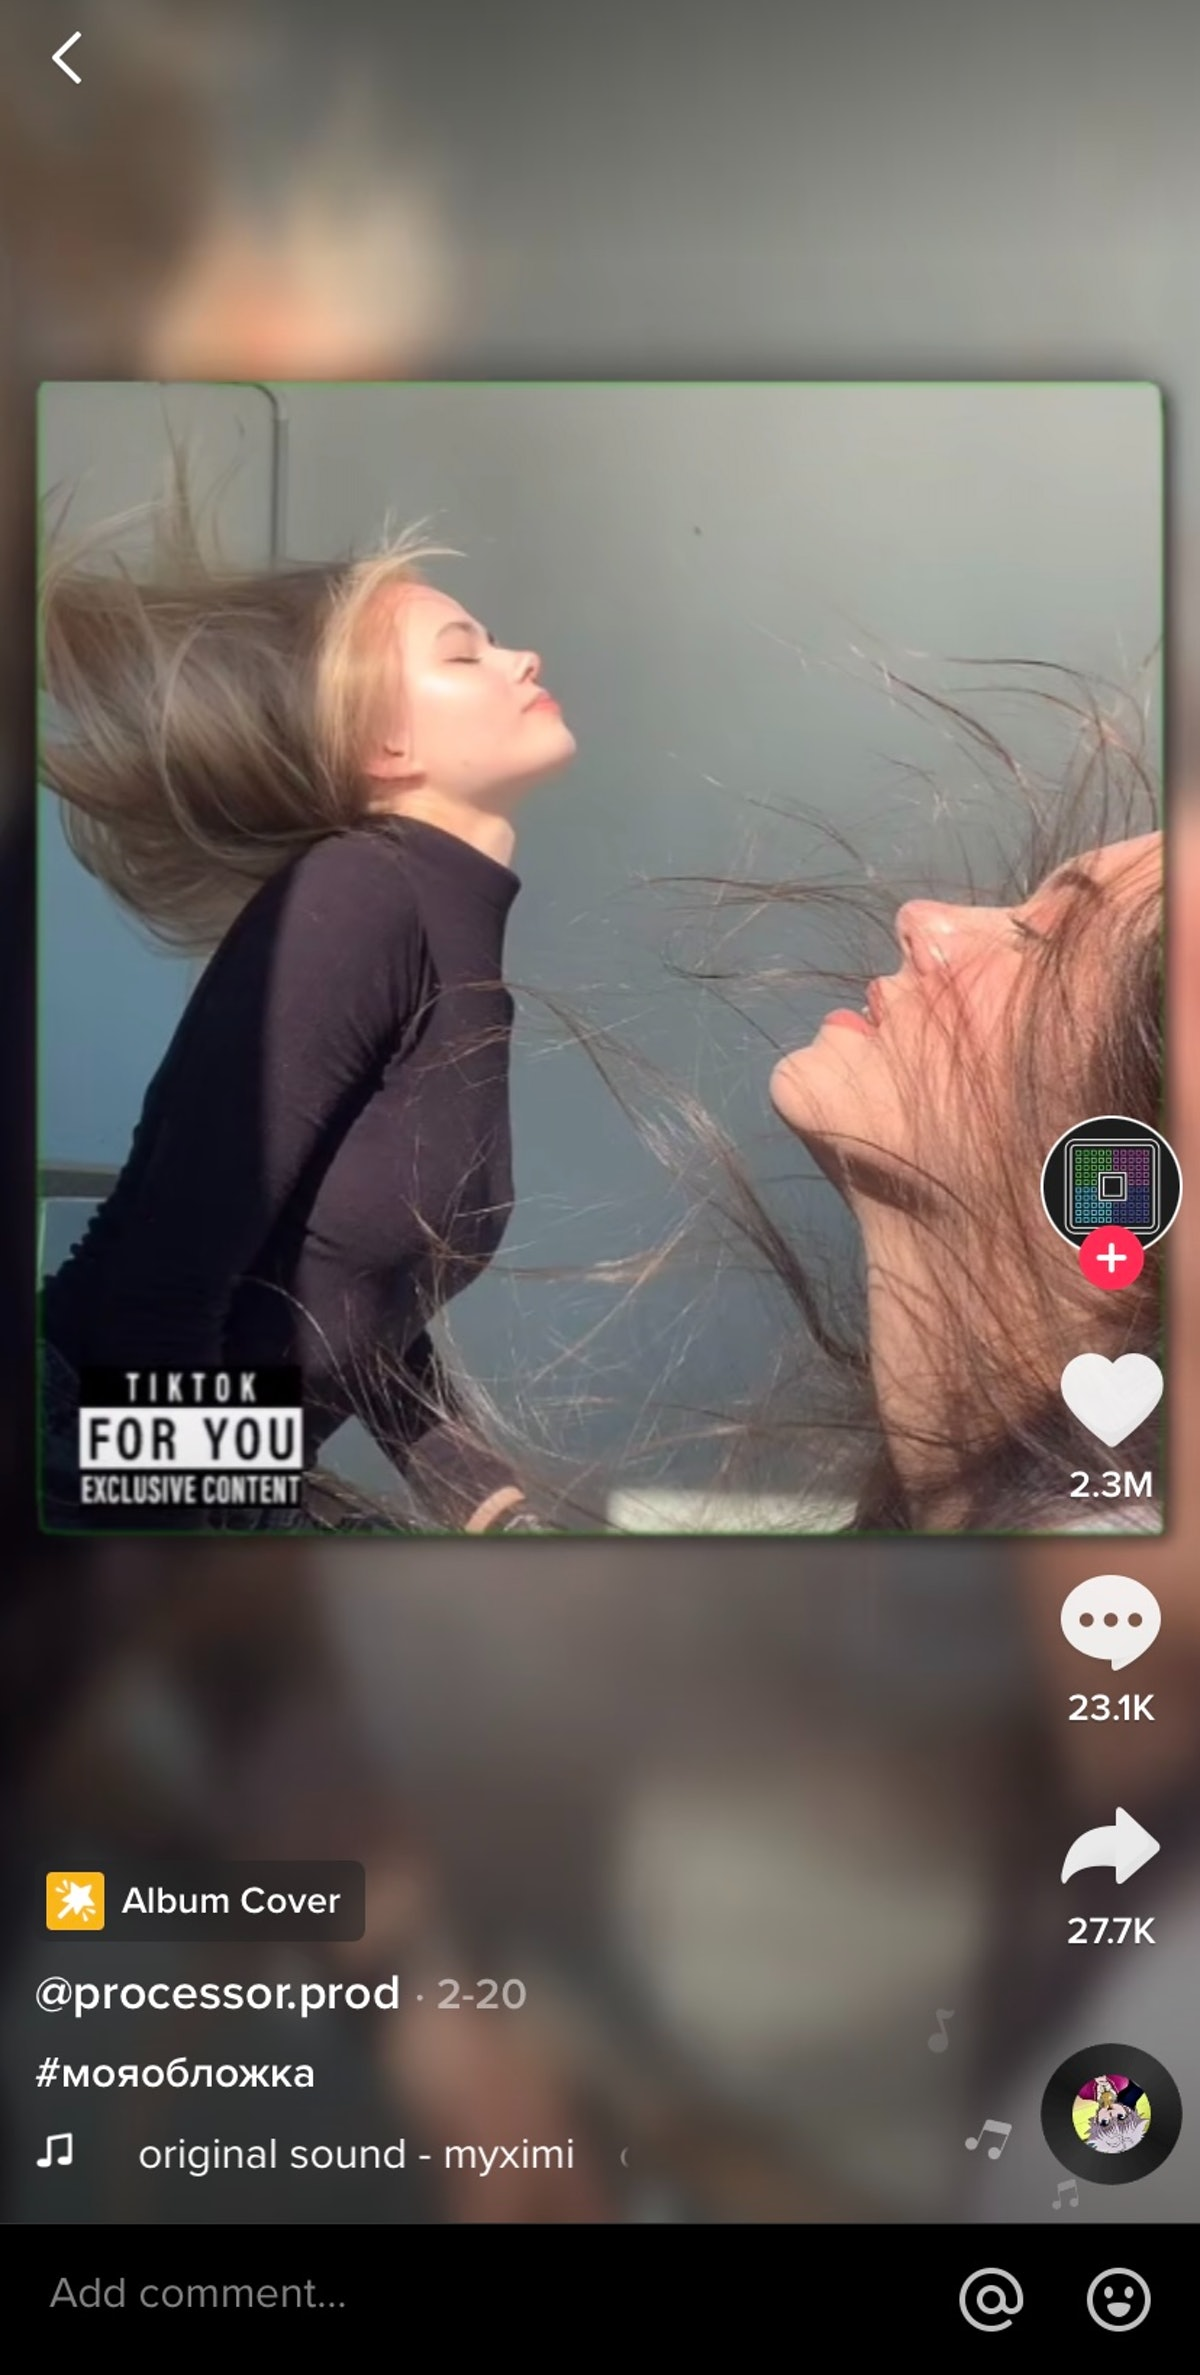 The album cover challenge on TikTok includes flipping your hair while a self-timer goes off.